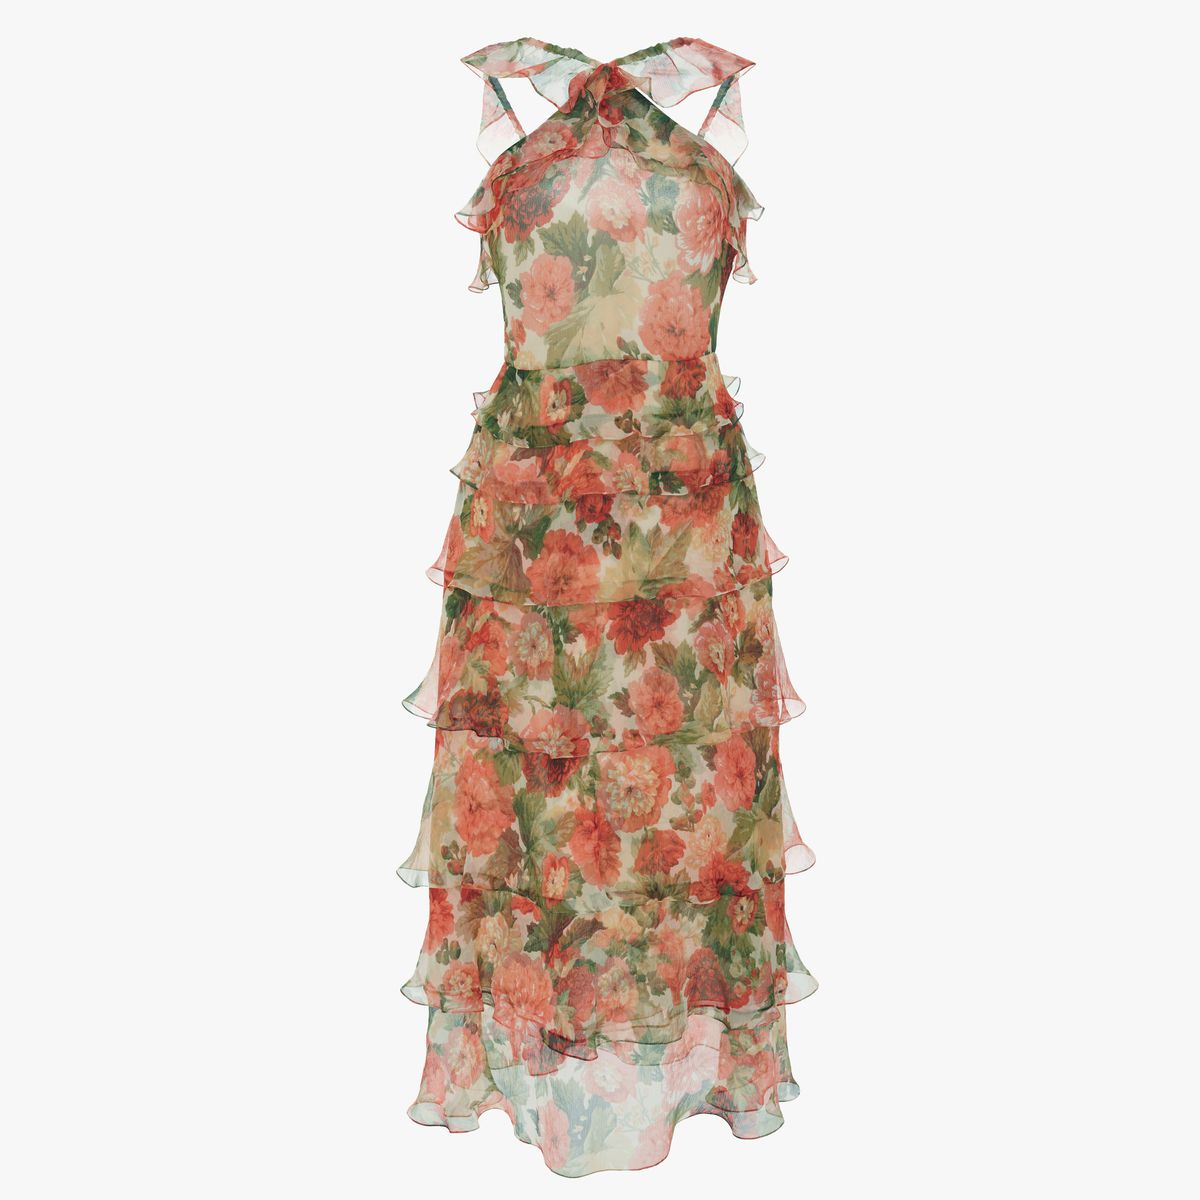 A floral printed tiered dress